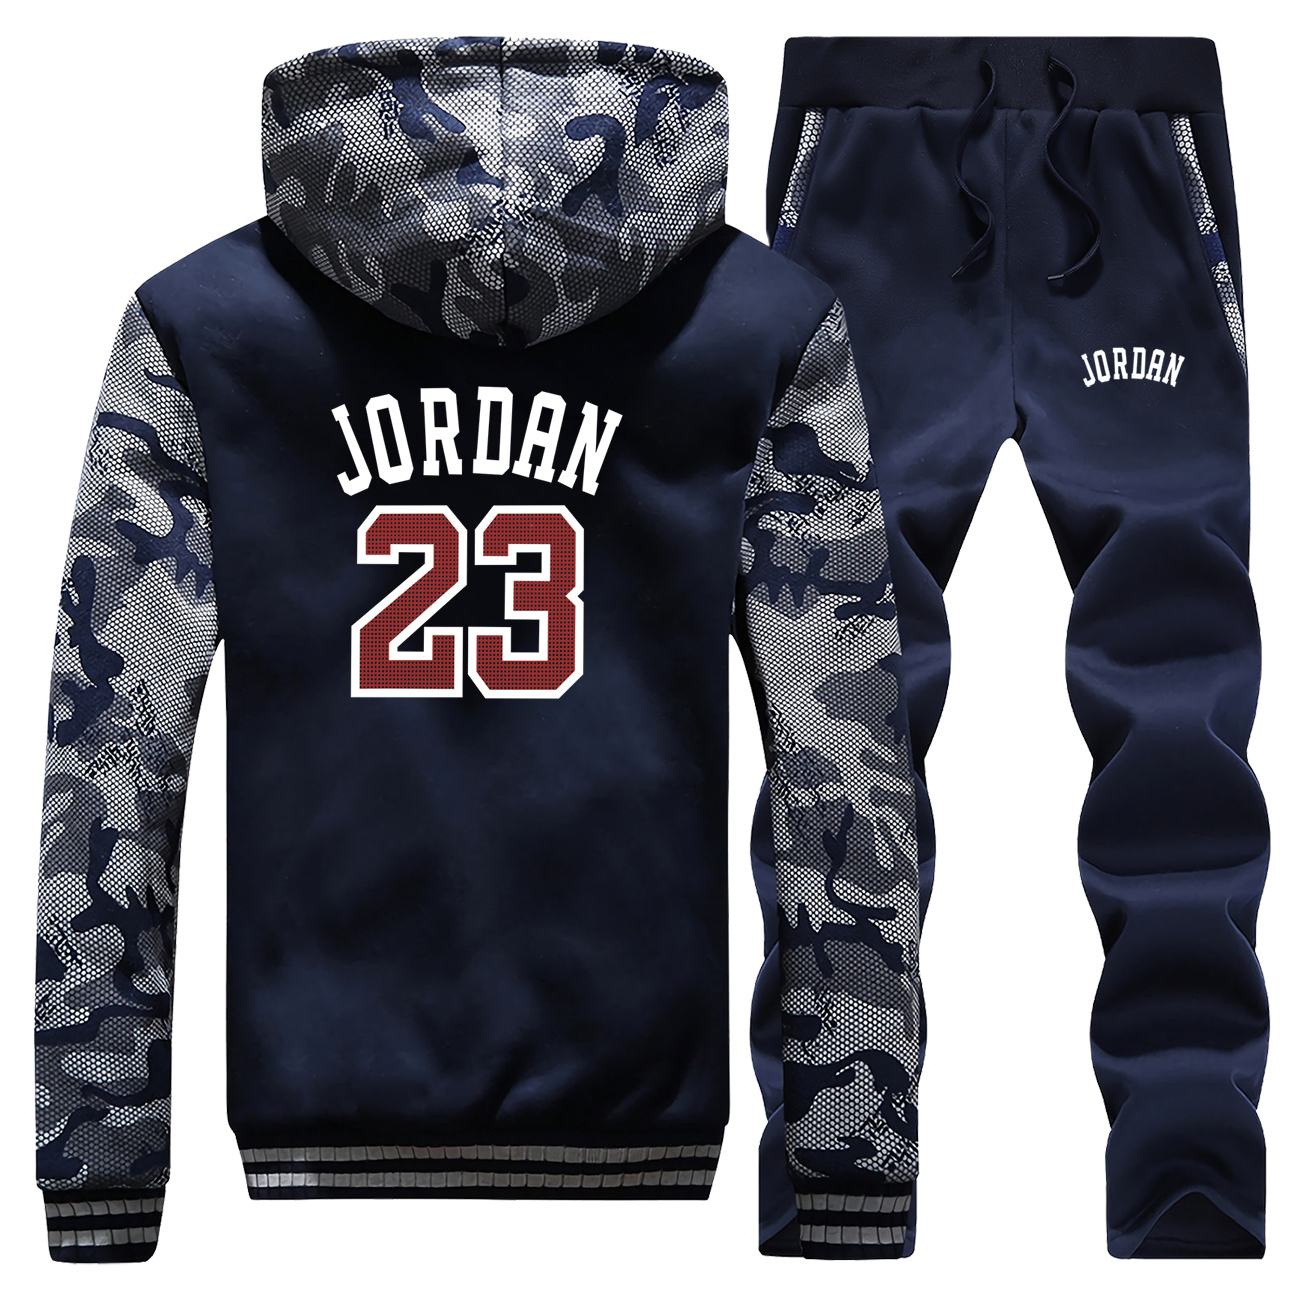 Jordan 23 Mens Tracksuit Set Hot Sports Clothes Male Tracksuit Men Suit Male Warm Pants Brand Sweatshirt + Trousers Men Costume